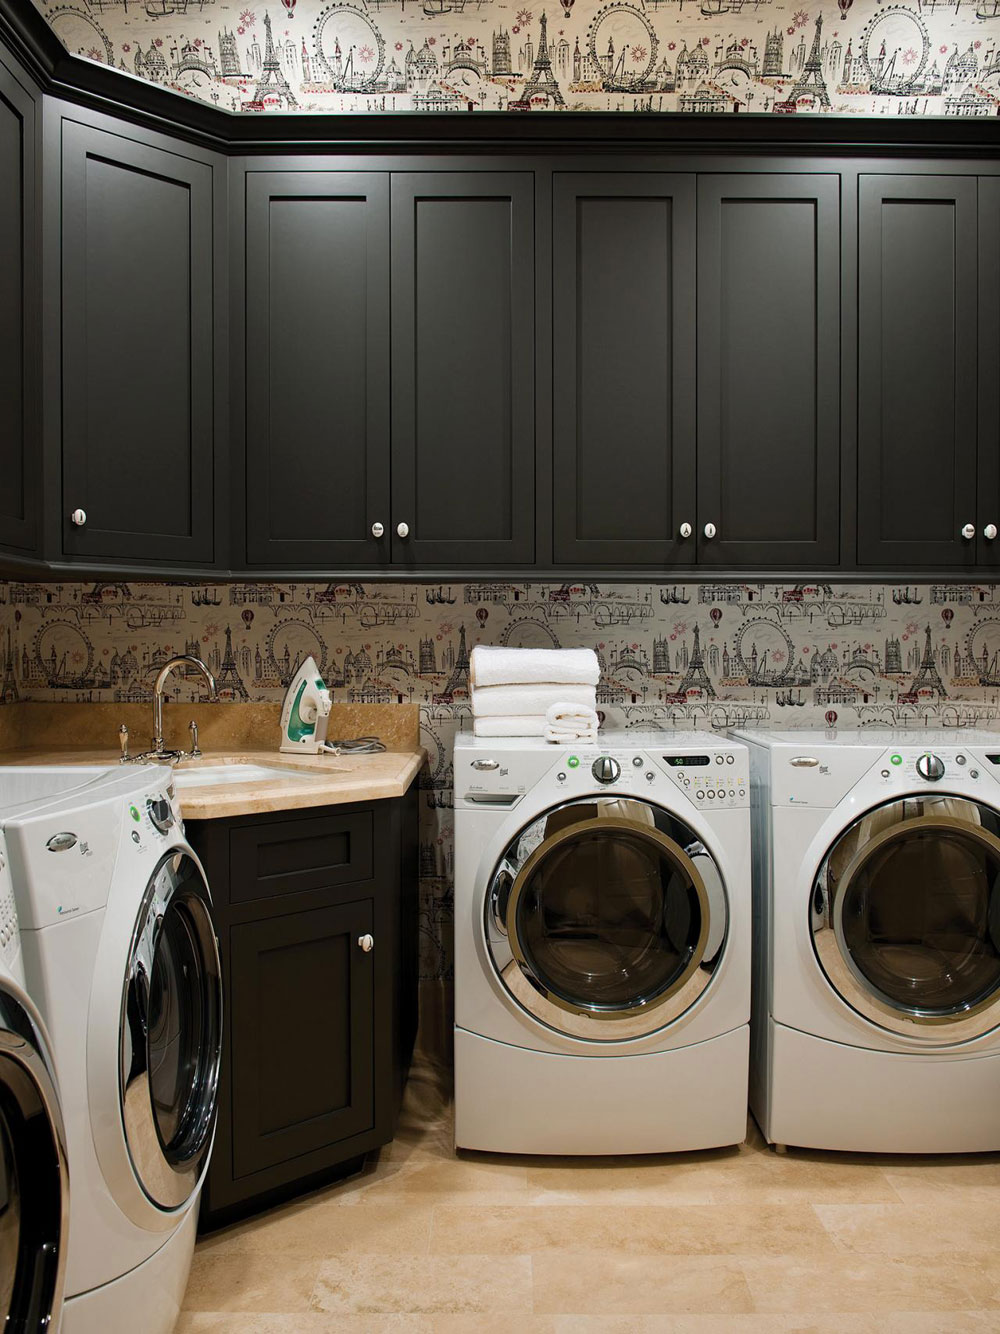 Laundry-room-ideas-for-a-clean-house-2 laundry-room-ideas for a clean house